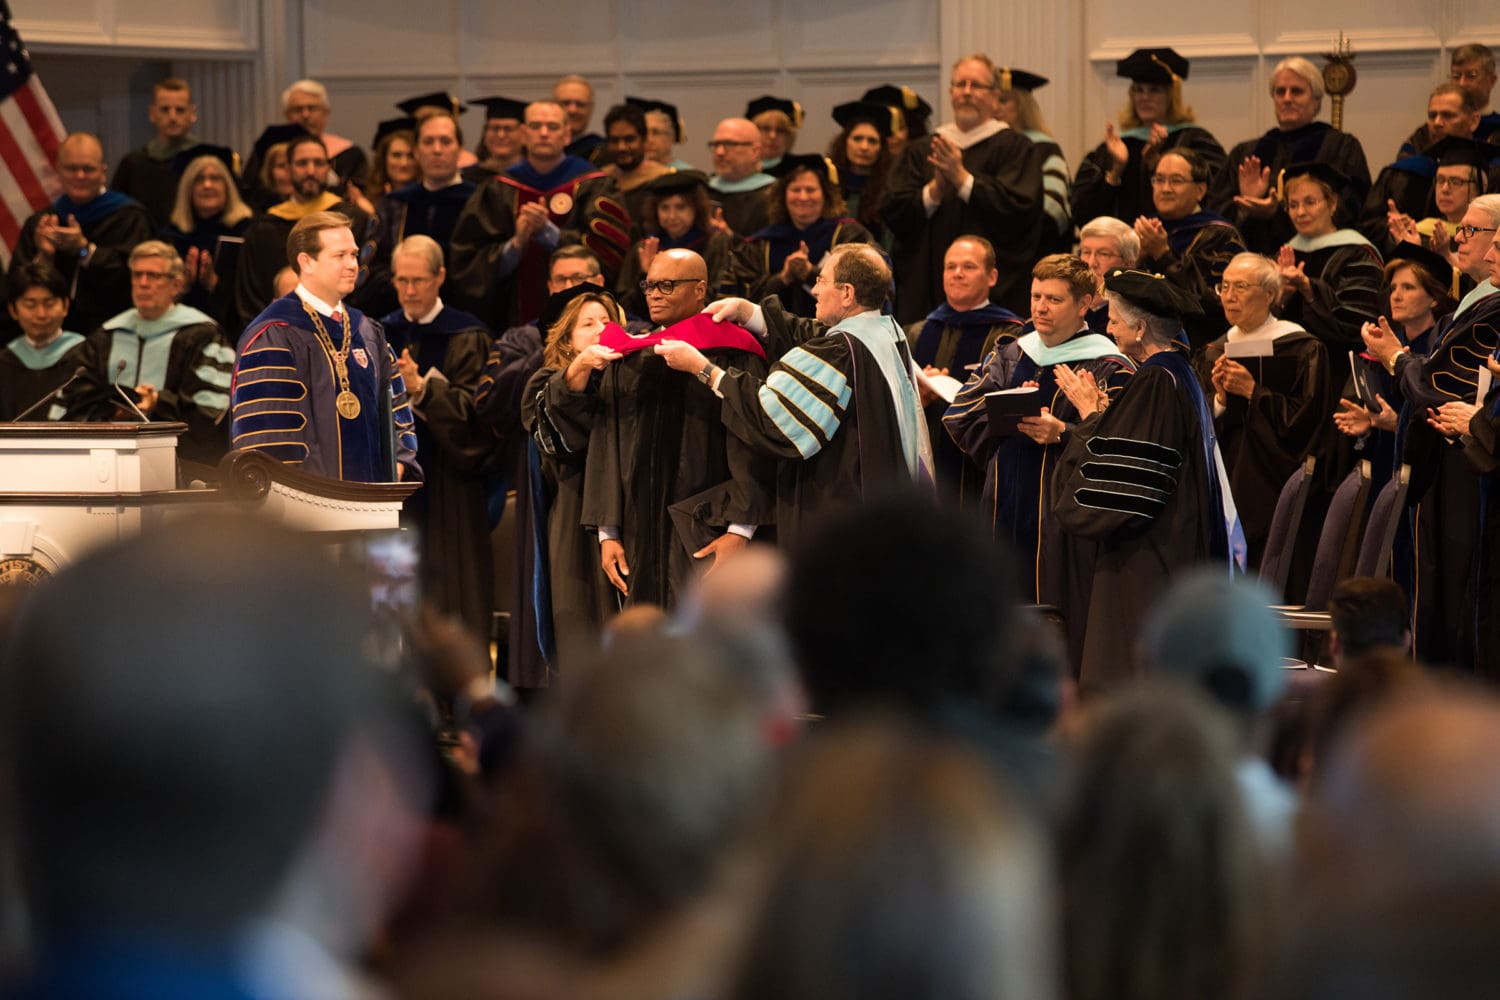 Dallas Baptist Hosts May Commencement Service - Focus Daily News